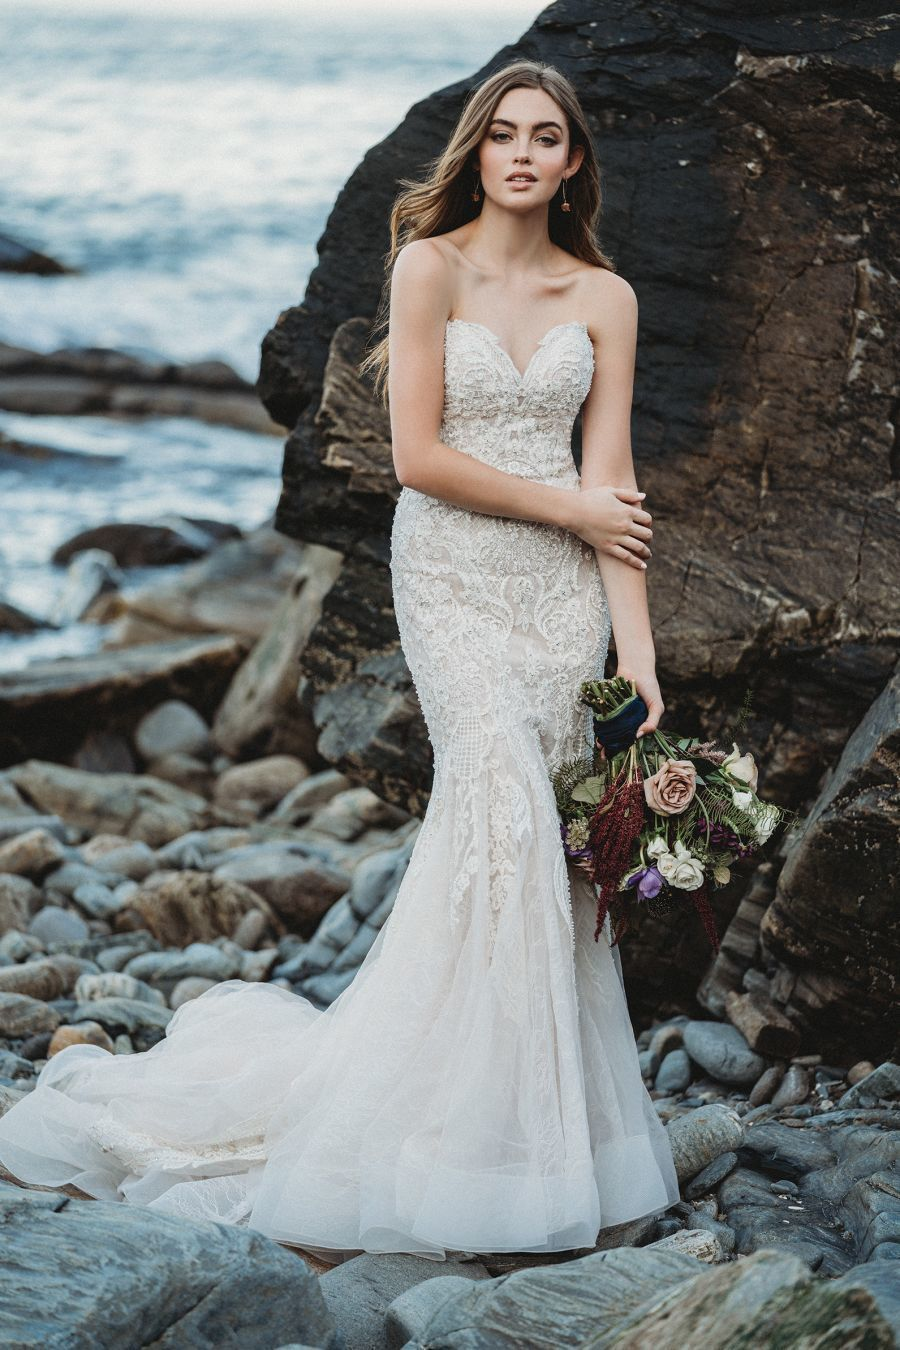 Allure bridals - 9601 size 16 - $2000 - (9% OFF)